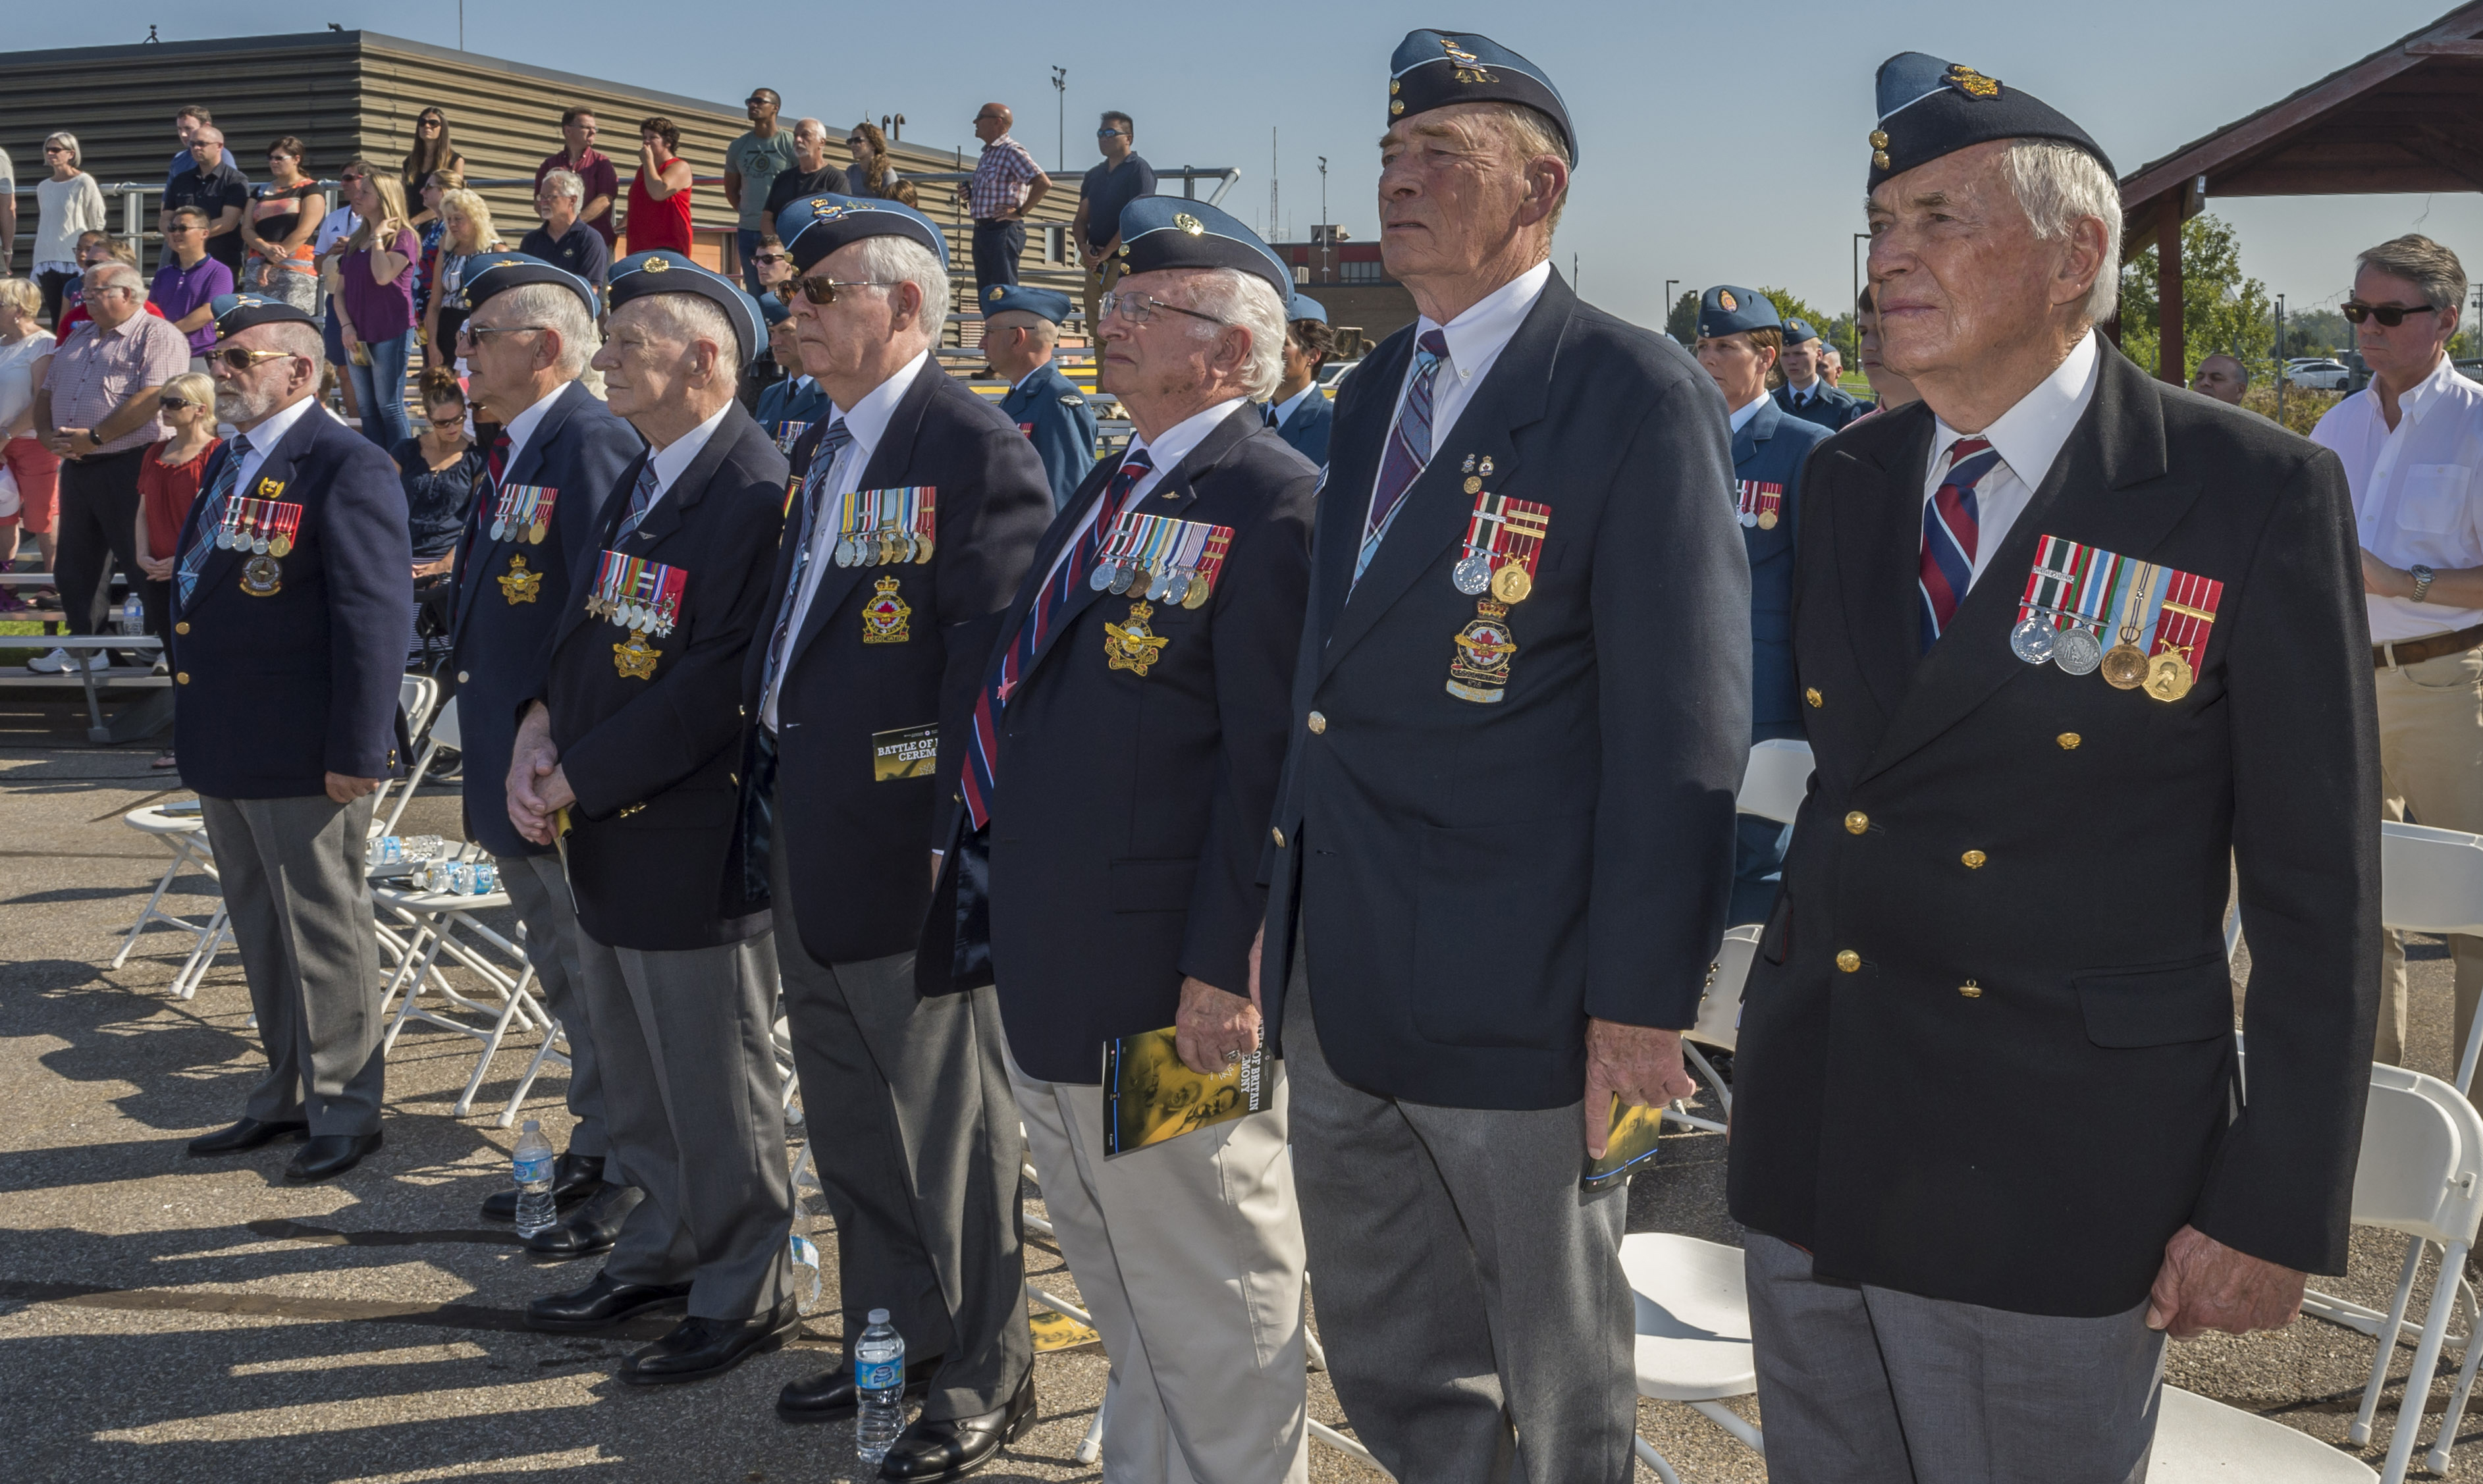 Air Force veterans attend the national Battle of Britain commemorative ceremony in Gatineau, Quebec, on September 17, 2017. From left to right: Mathew Carson, veterans parade commander and second vice president of 410 Wing, Royal Canadian Air Force Association, in Ottawa;  Michael Harrison, 410 Wing; Robert Bradley, 410 Wing member and Second World War veteran; John Makichuk, 410 Wing; Wib Neal, retired RCAF; Jack Donnelly, 410 Wing; and  Jack DesBrisey, 410 Wing. PHOTO: Corporal Alana Morin, FA03-2017-0119-003